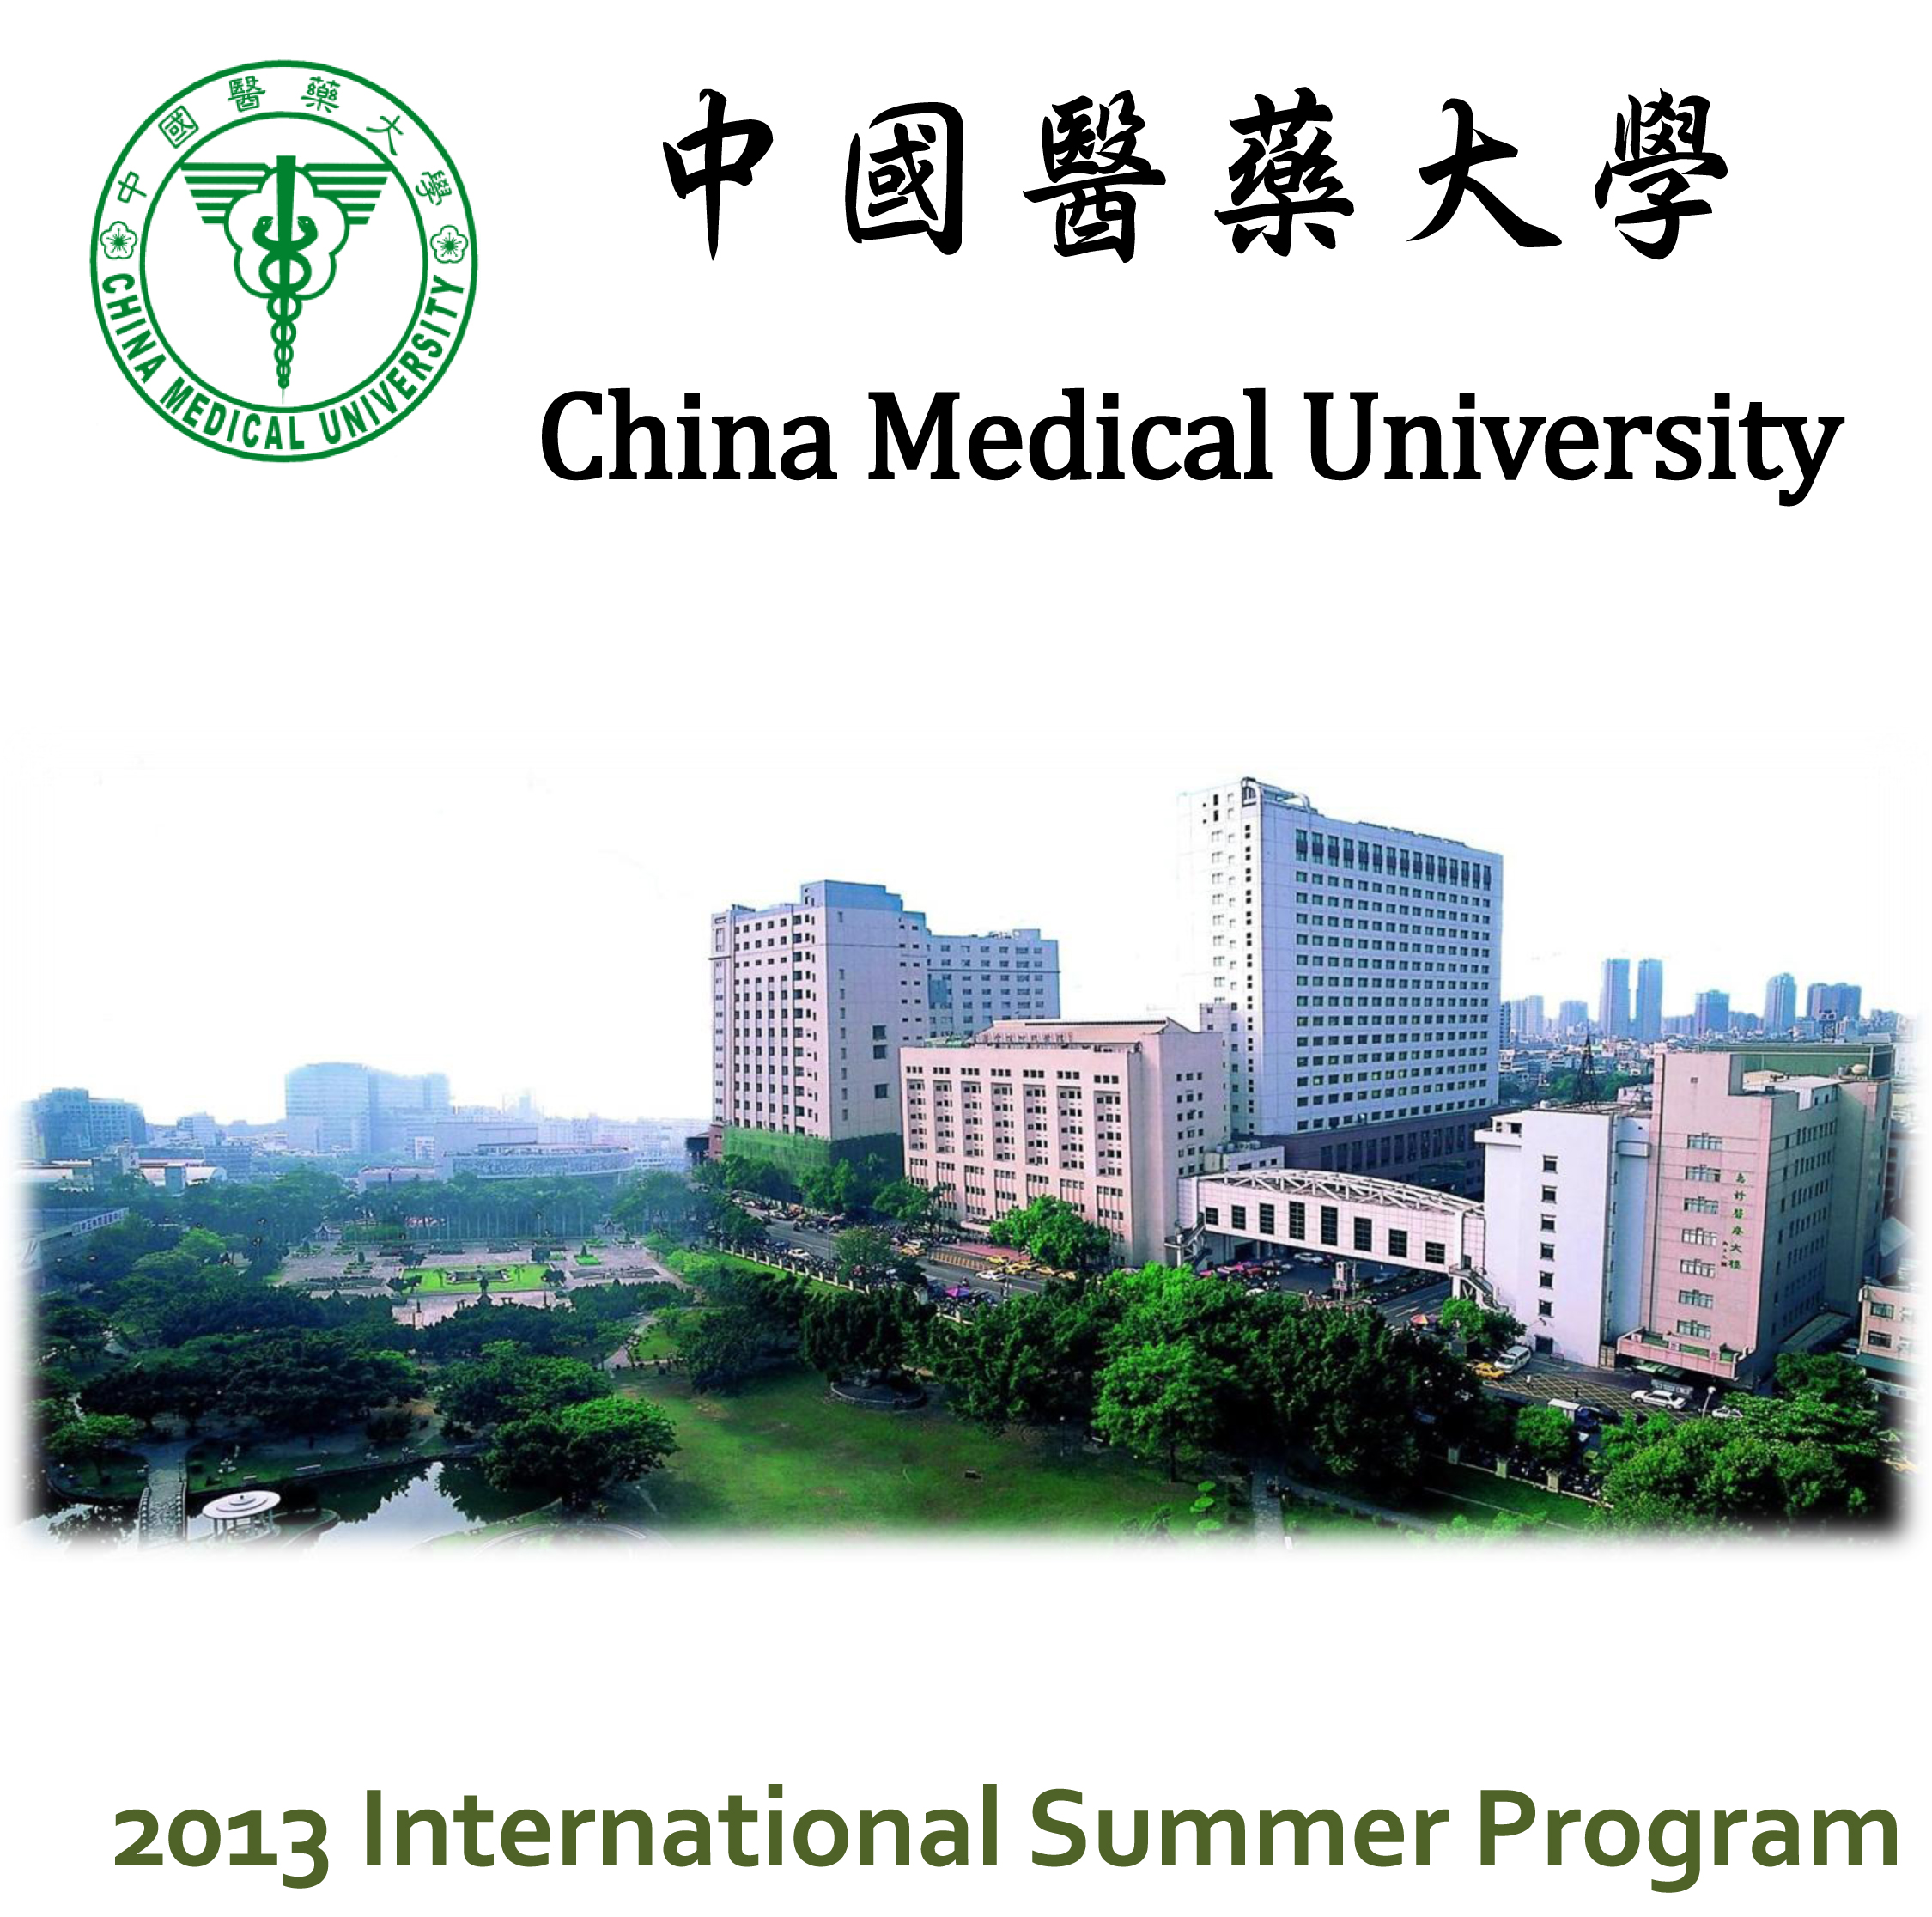 Six International Summer Program Scholarships for MSU from China Medical University, Taiwan